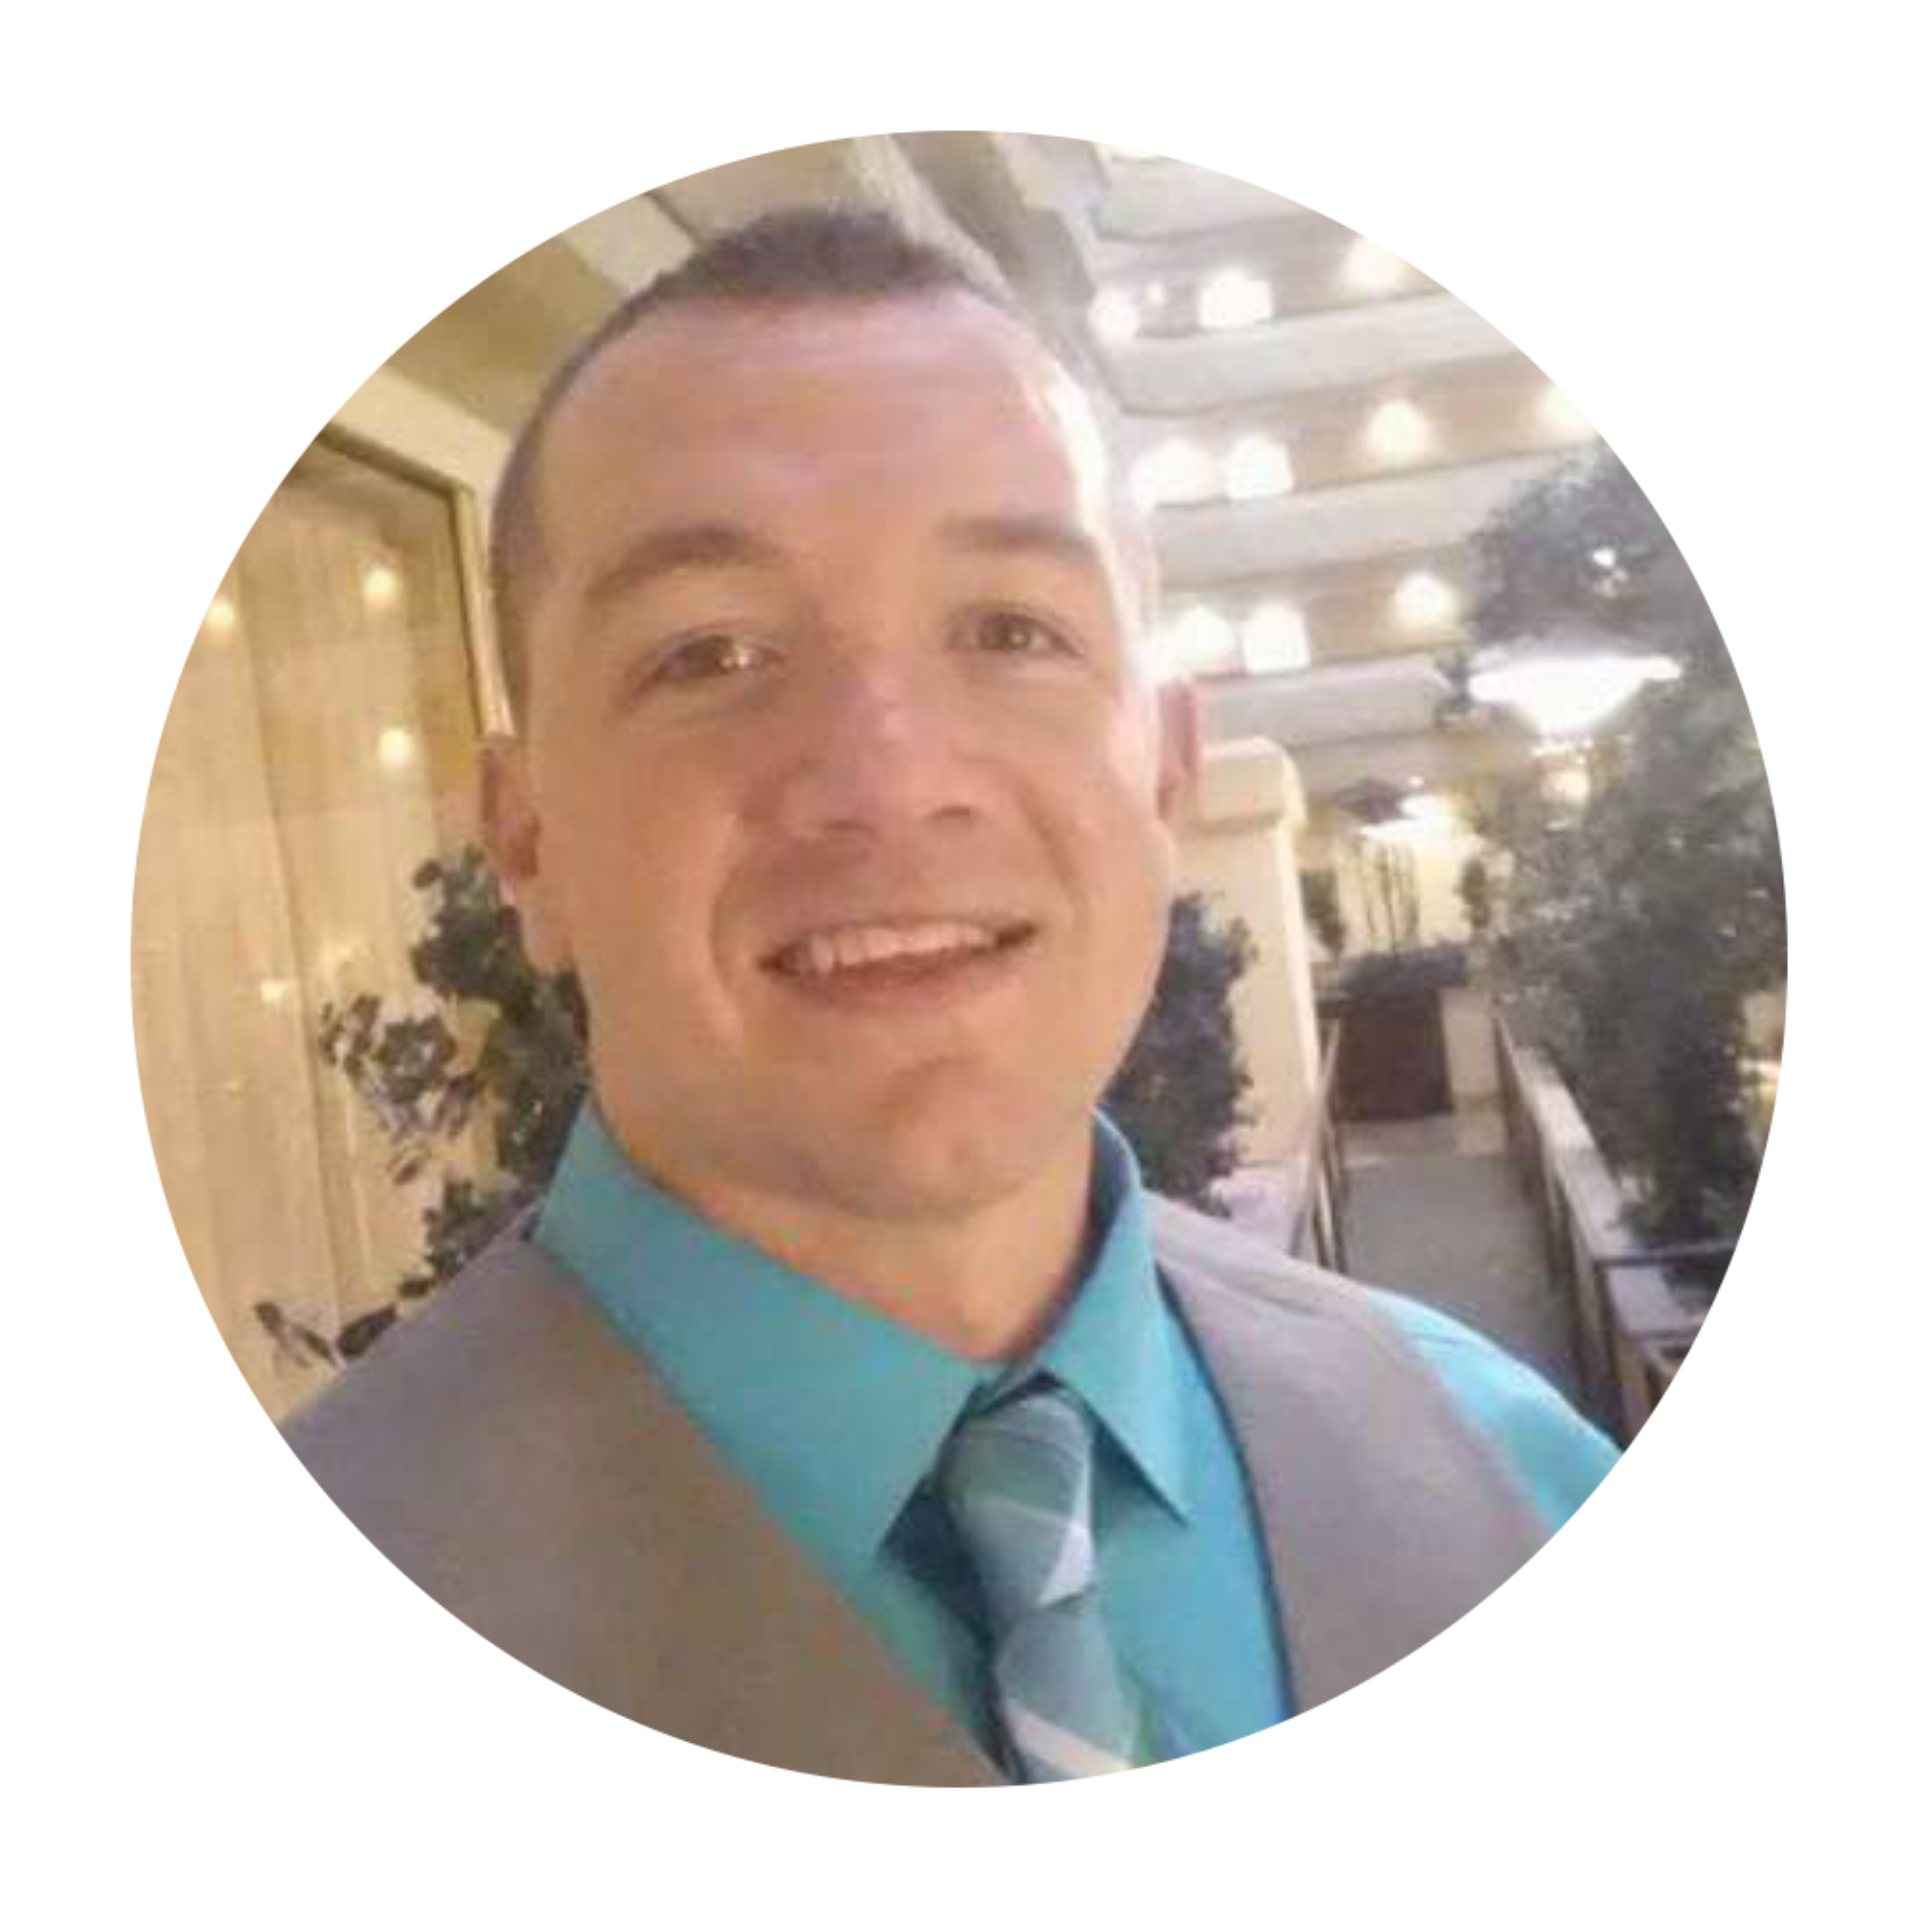 After completing this training and living these principles daily , I've more than doubled my sales this year. More importantly I'm spending more time on the things I really enjoy in life, and buying my first house. Thank you Ryan I really appreciate everything you do.   Gabe Kinser  | Sales, Armstrong McCall